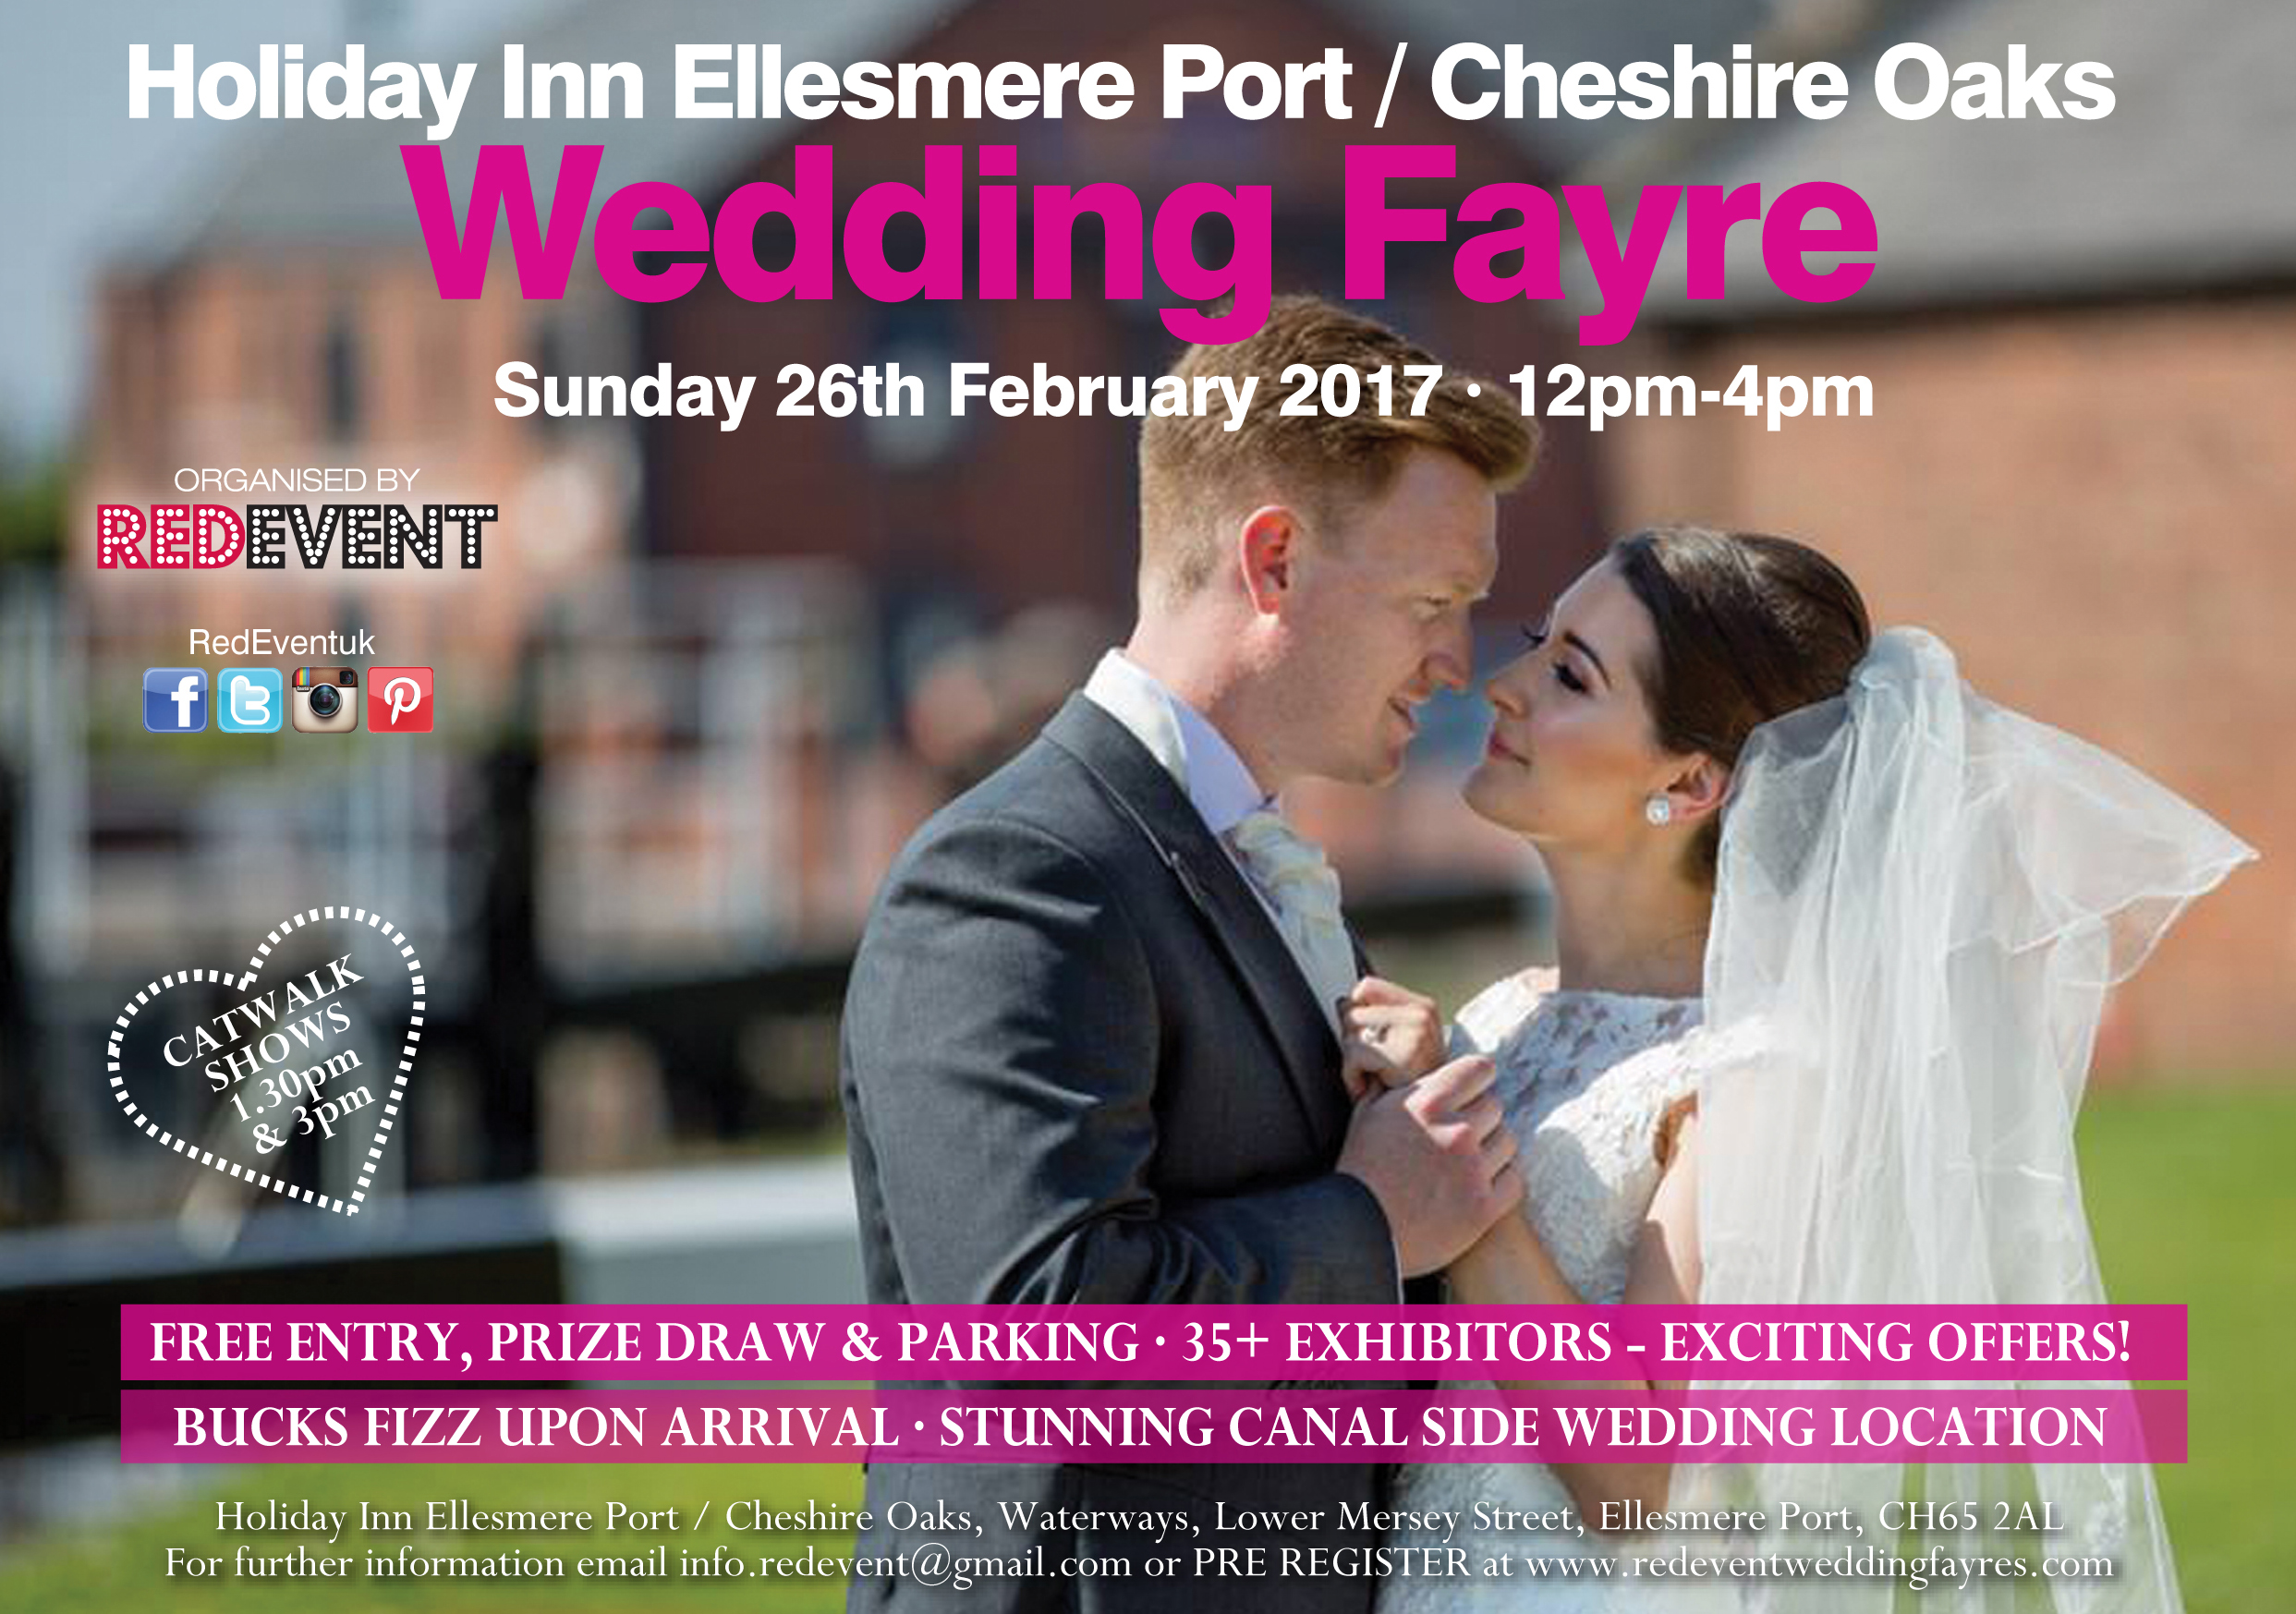 Holiday Inn Ellesmere Port Wedding Fayre www.redeventweddingfayres.com